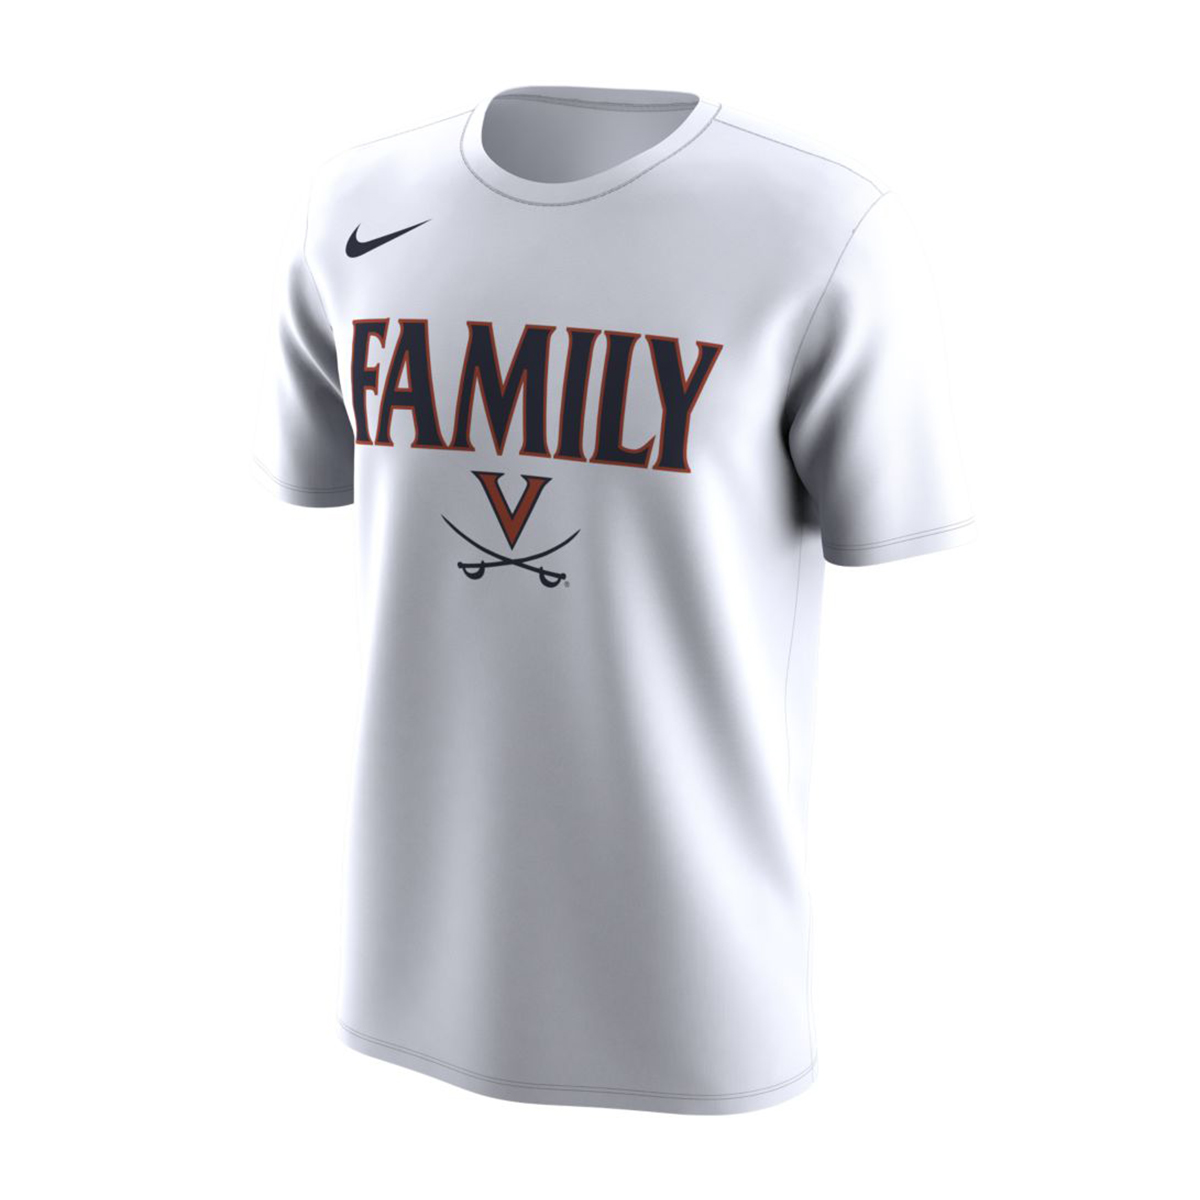 University of Virginia 2019 Bench T-shirt